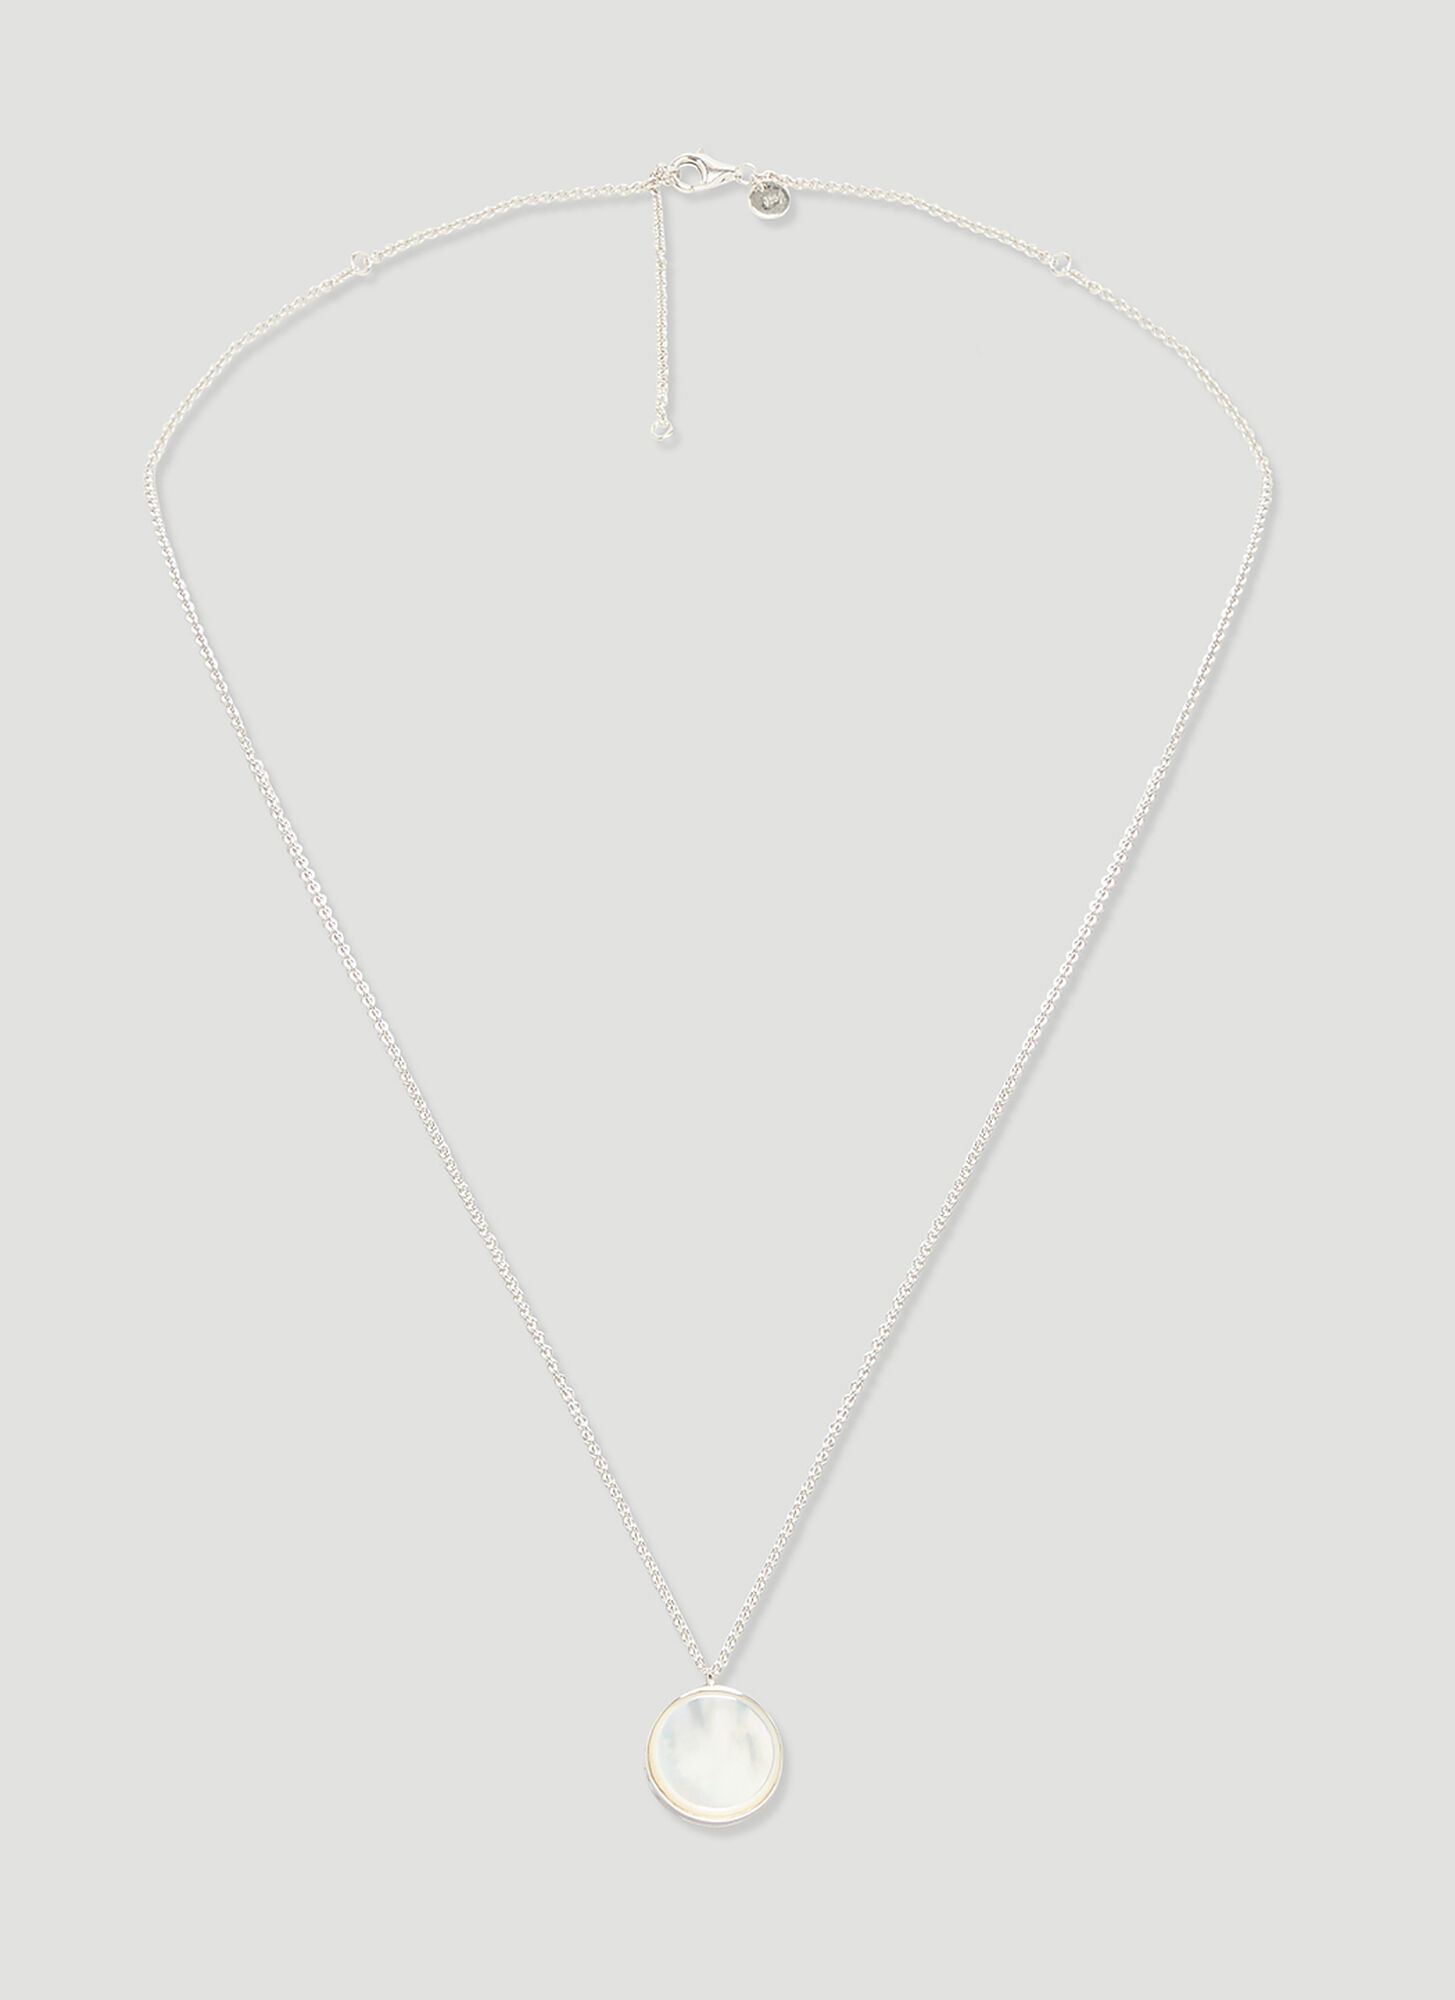 Tom Wood Mother of Pearl Pendant Necklace in SIlver